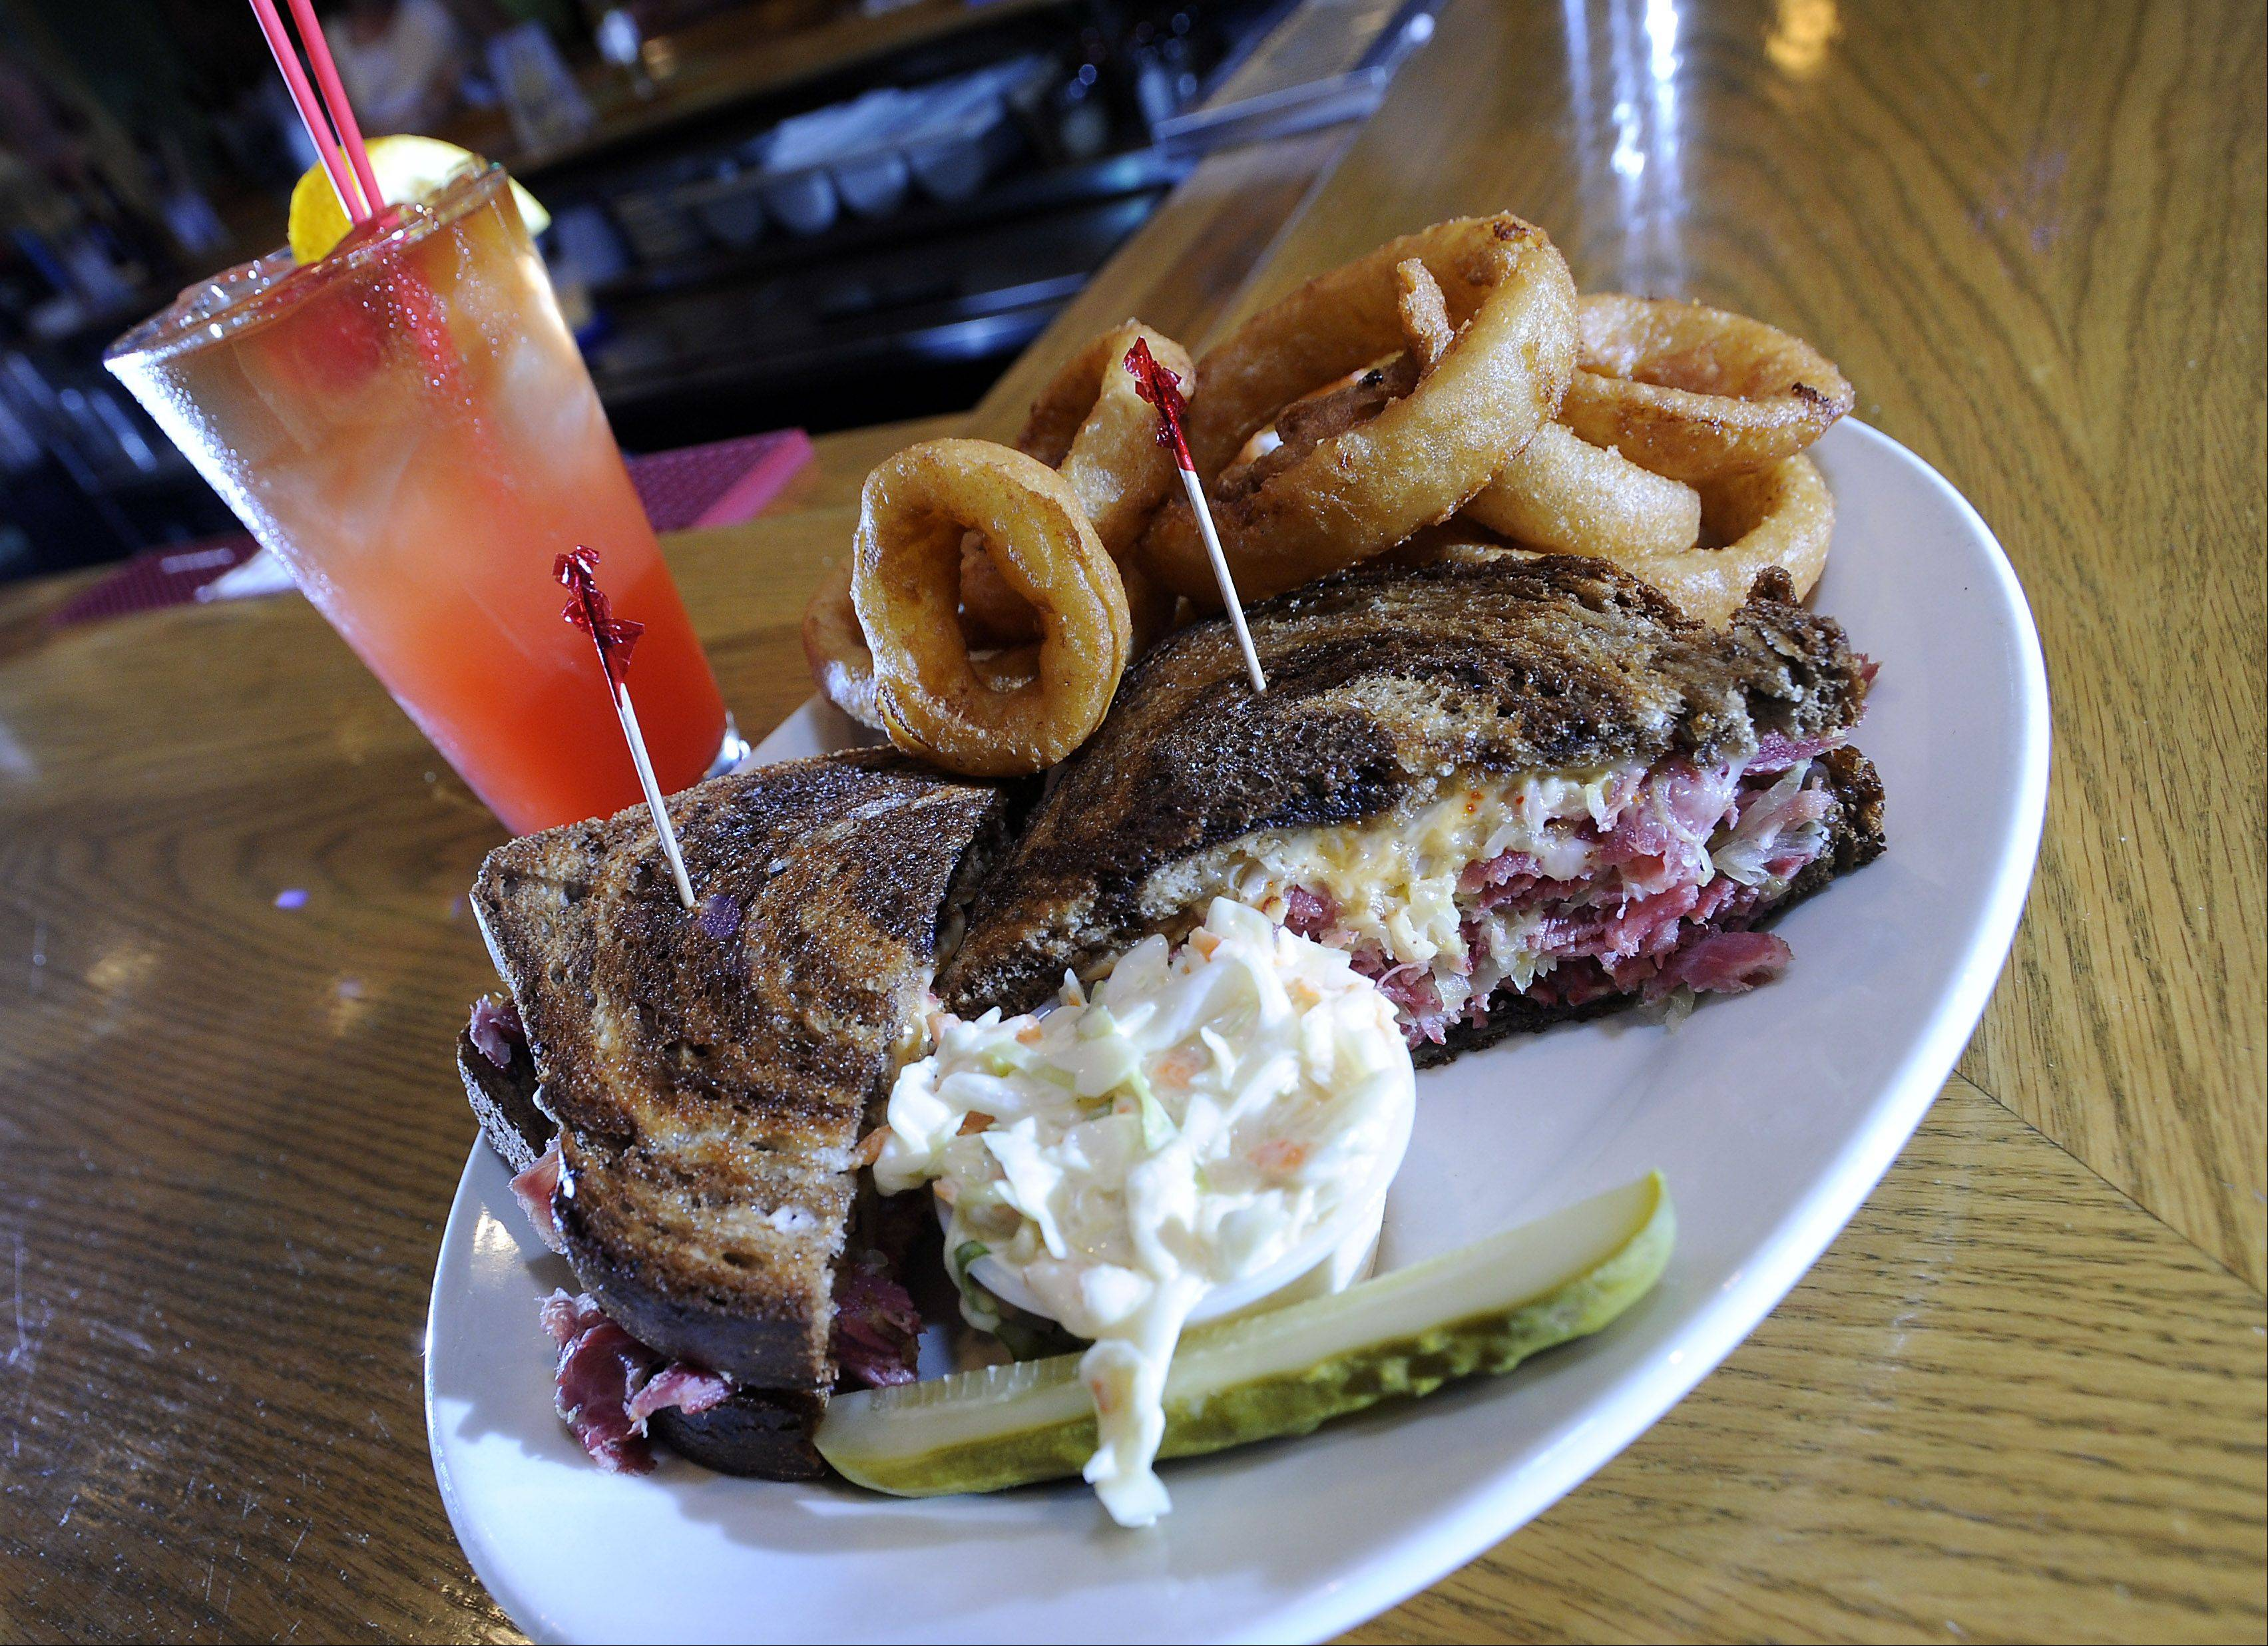 Club Casa's Reuben sandwich features corned beef, sauerkraut, cheese and dressing between slices of marble rye.